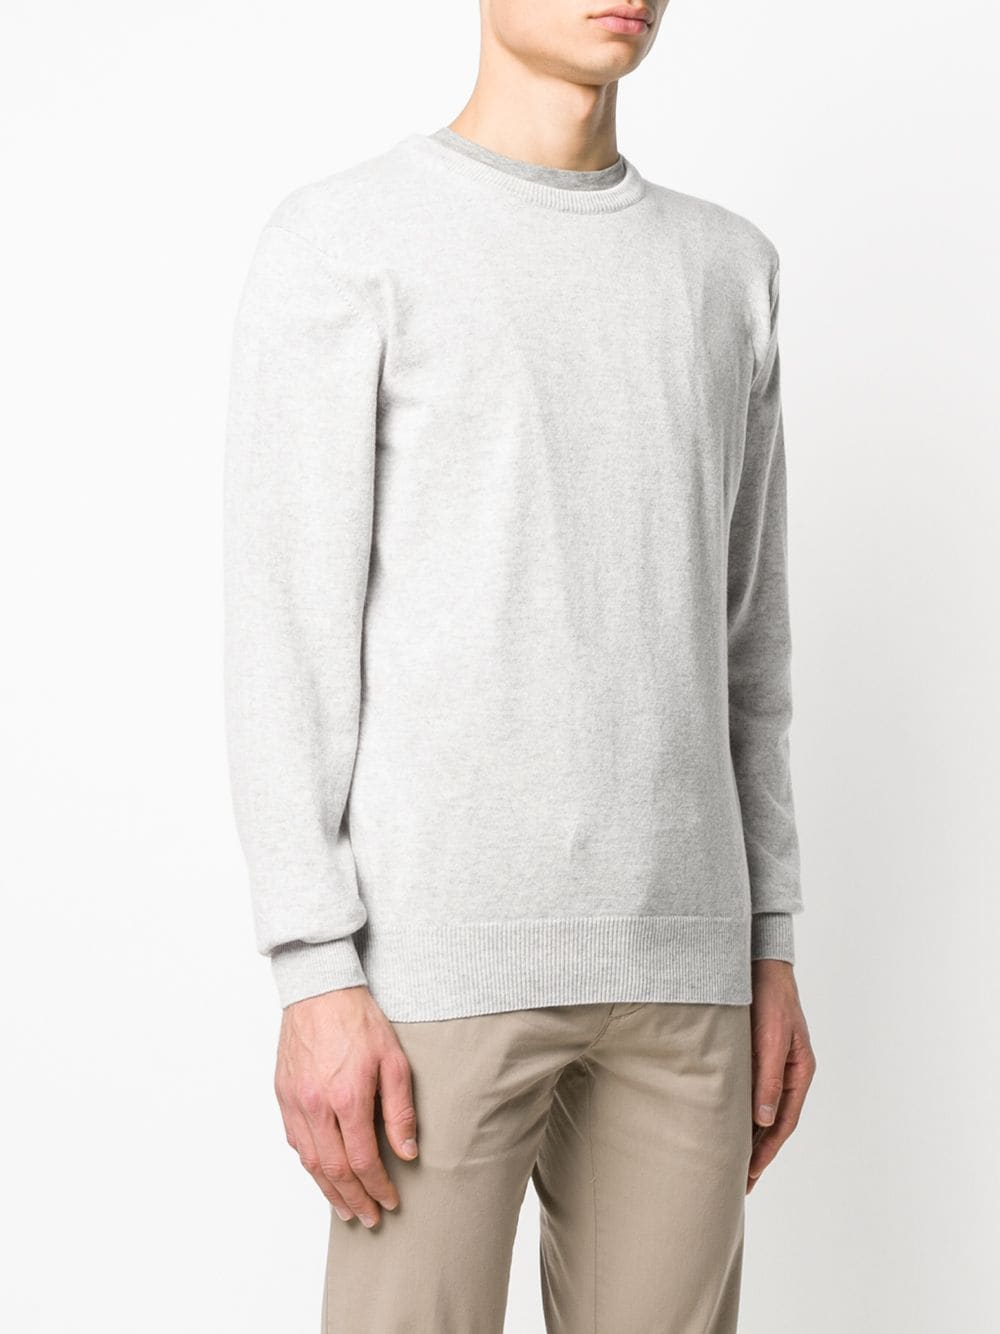 light grey crew-neck cachemere pullover ELEVENTY |  | 979MA0206-MAG2400613